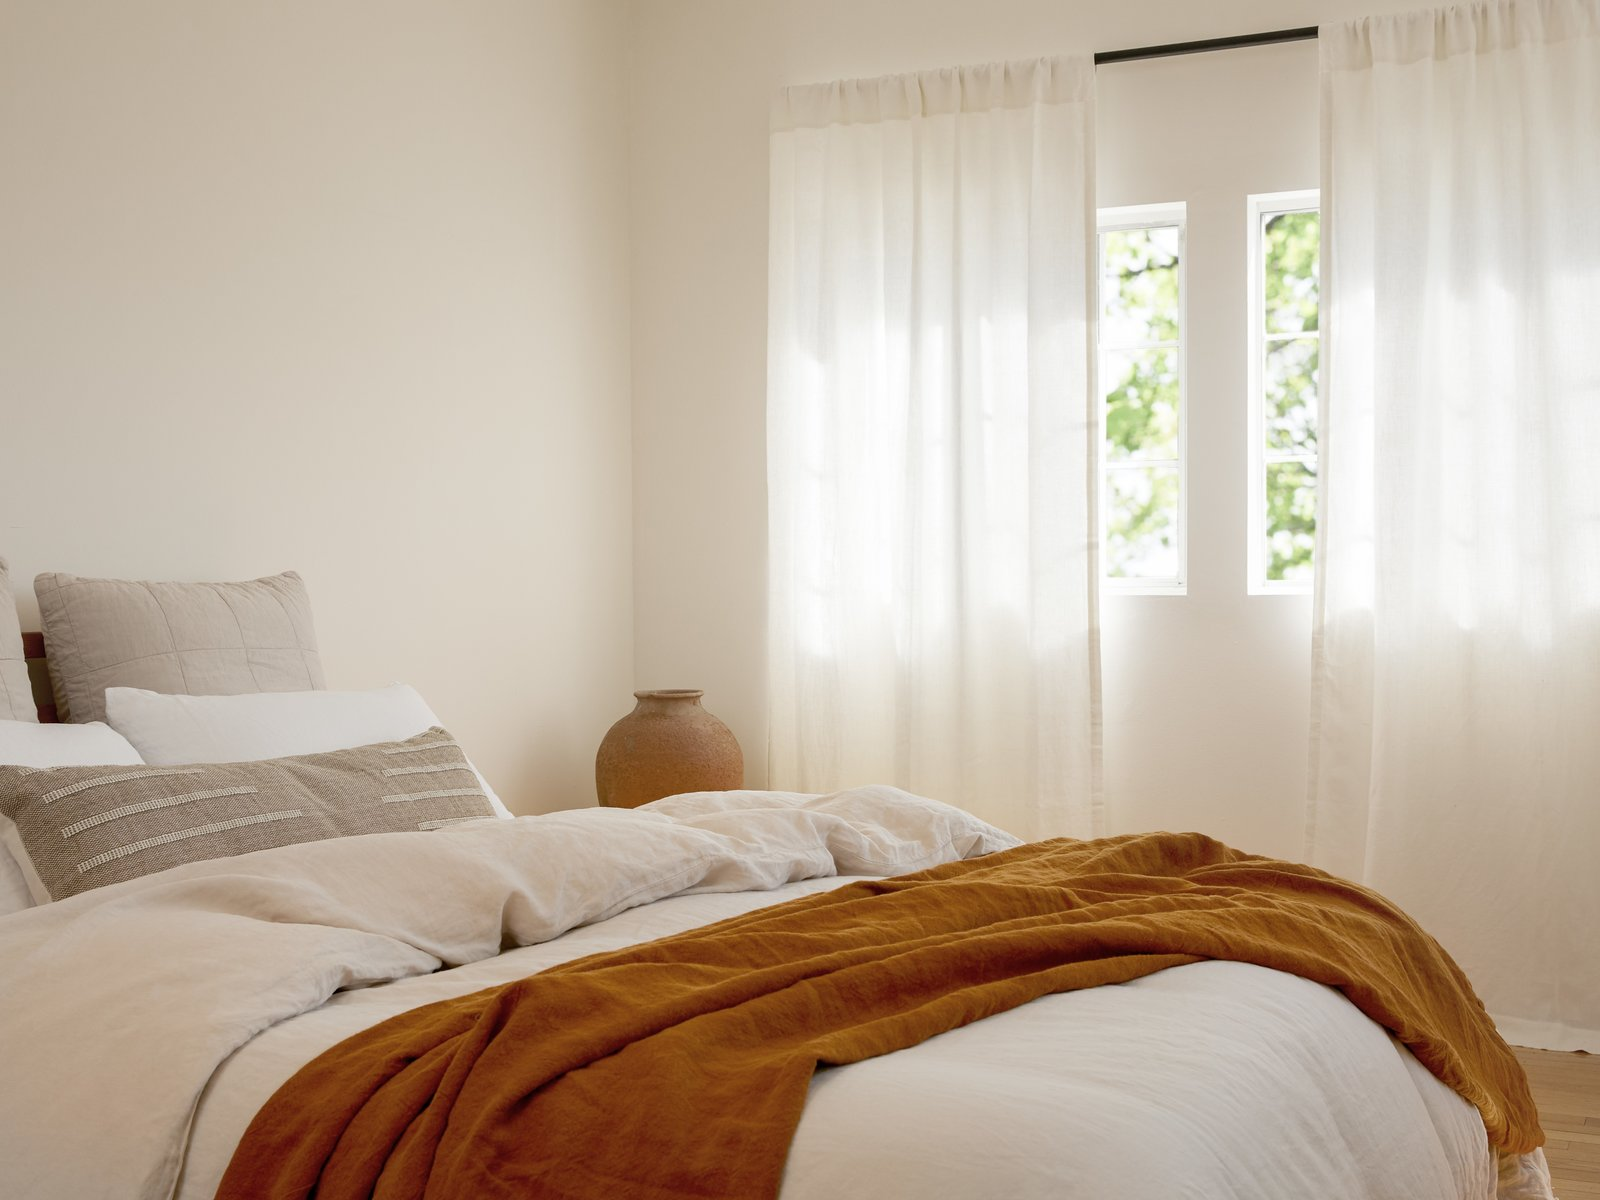 Treat Your Windows to a Big Upgrade With Parachute's New Linen Curtains